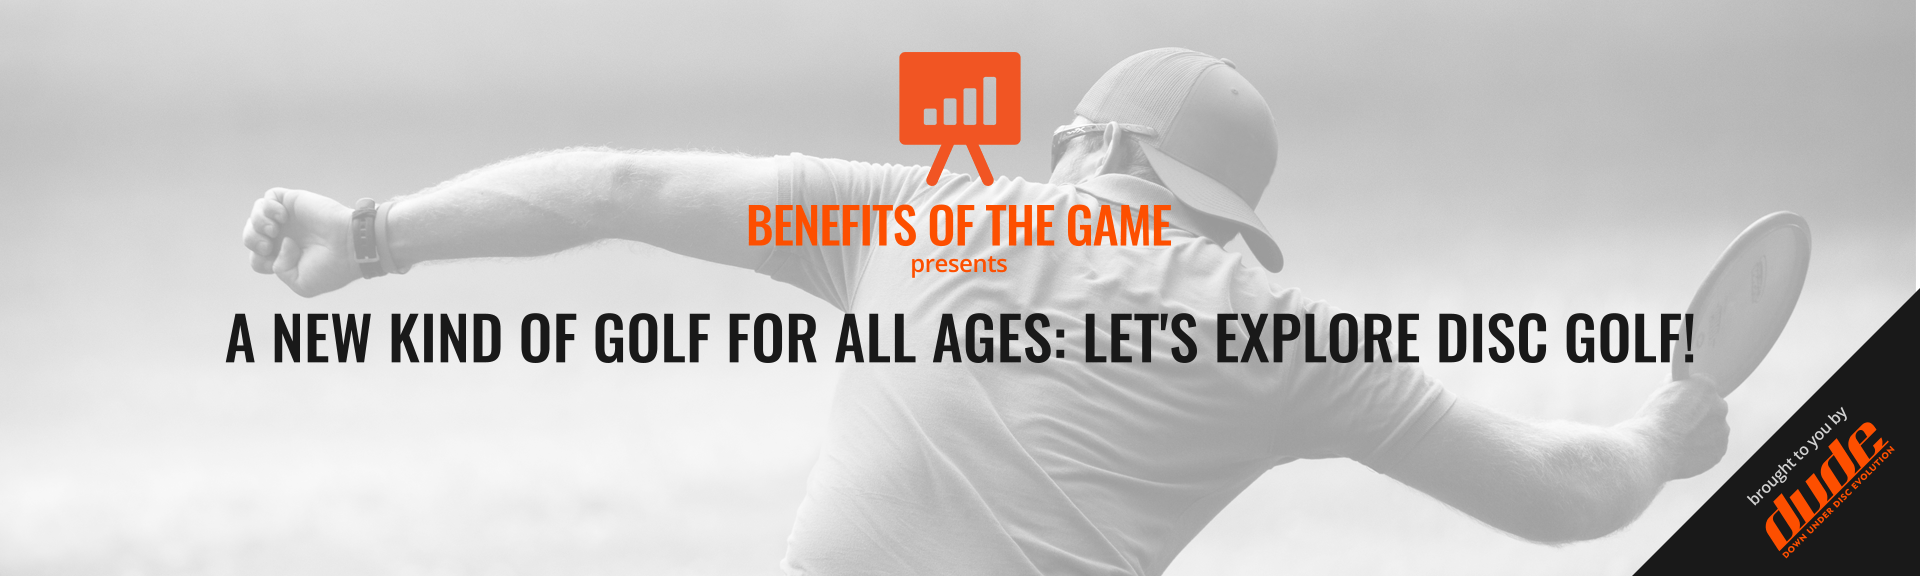 Dude Clothing BENEFITS OF THE GAME A New Kind Of Golf For All Ages: Let's Explore Disc Golf!